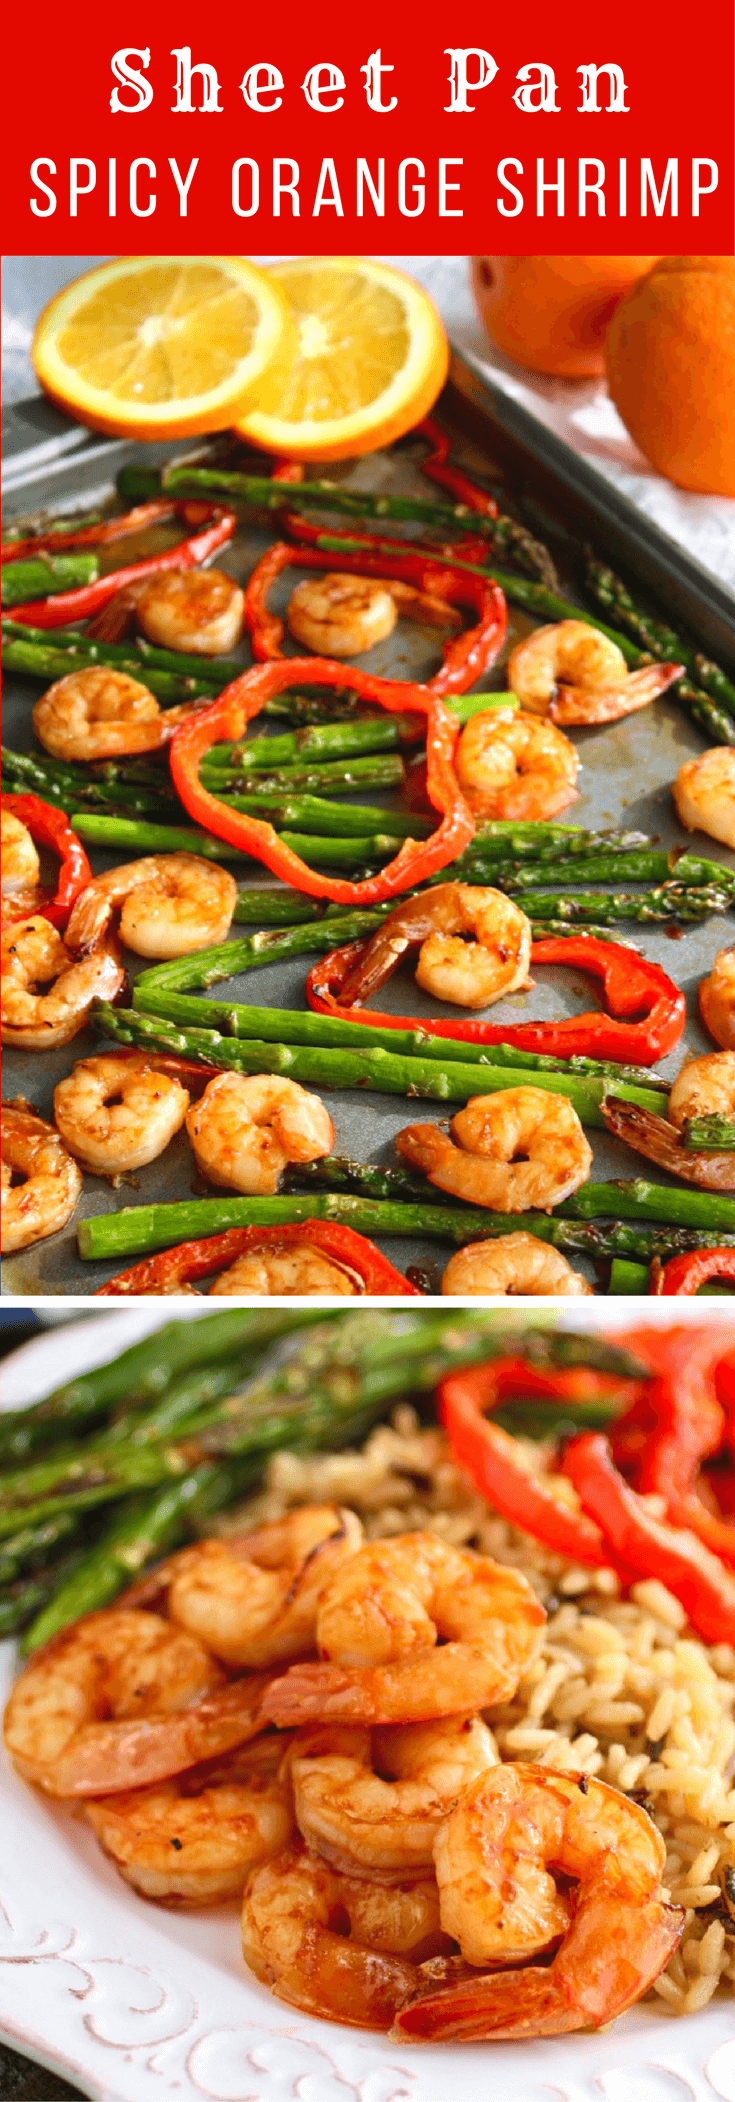 Sheet Pan Spicy Orange Shrimp with Vegetables is a treat for any night of the week. The colors and flavors are fab!